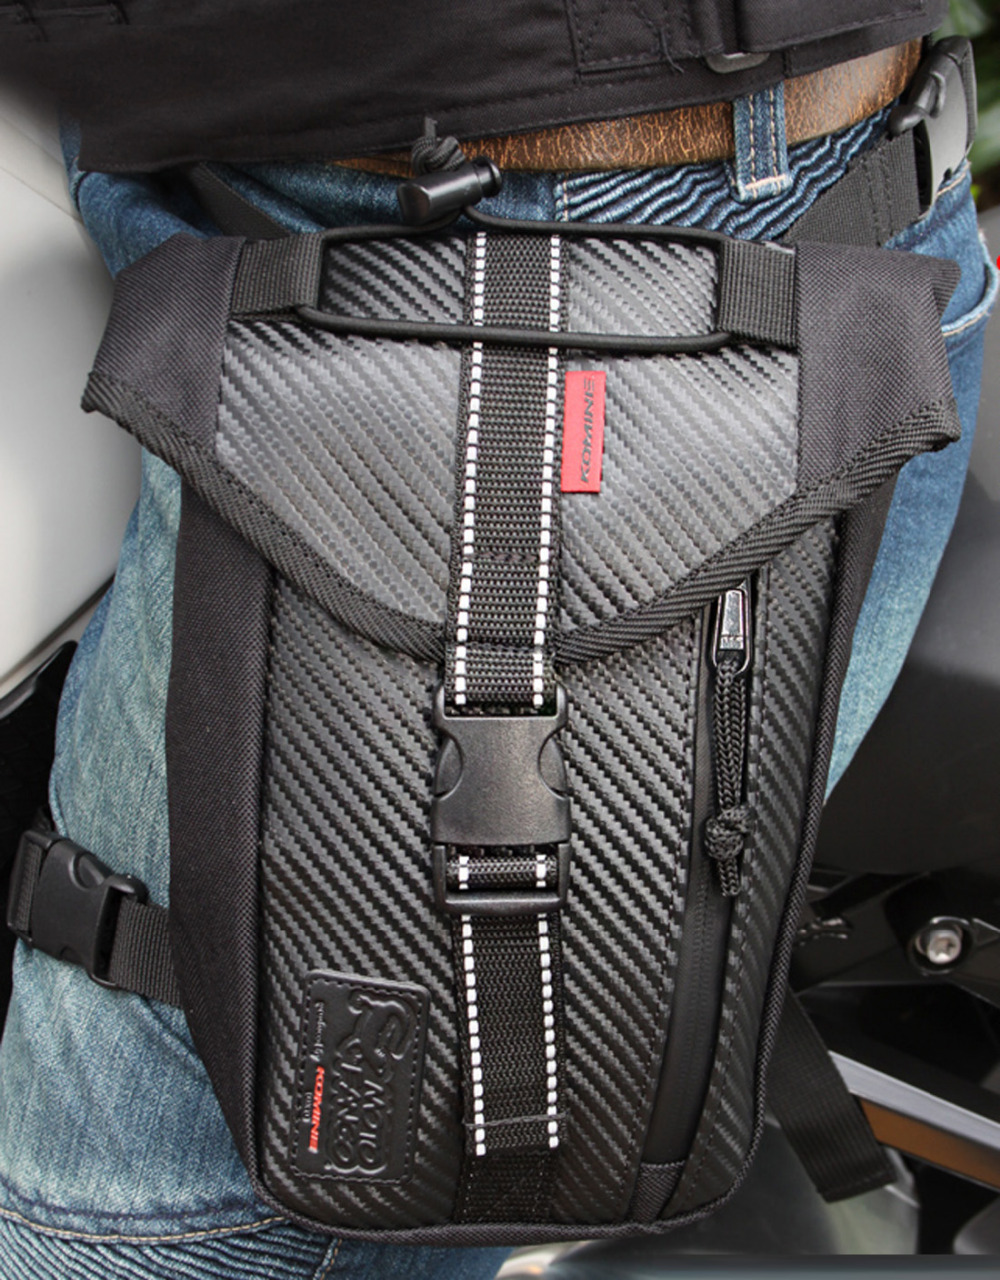 New Men Oxford Leg Bag Drop Fanny Waist Belt Hip Bum Travel Motorcycle Riding Trend Cell Phone Case Cover Waterproof Pack Purse